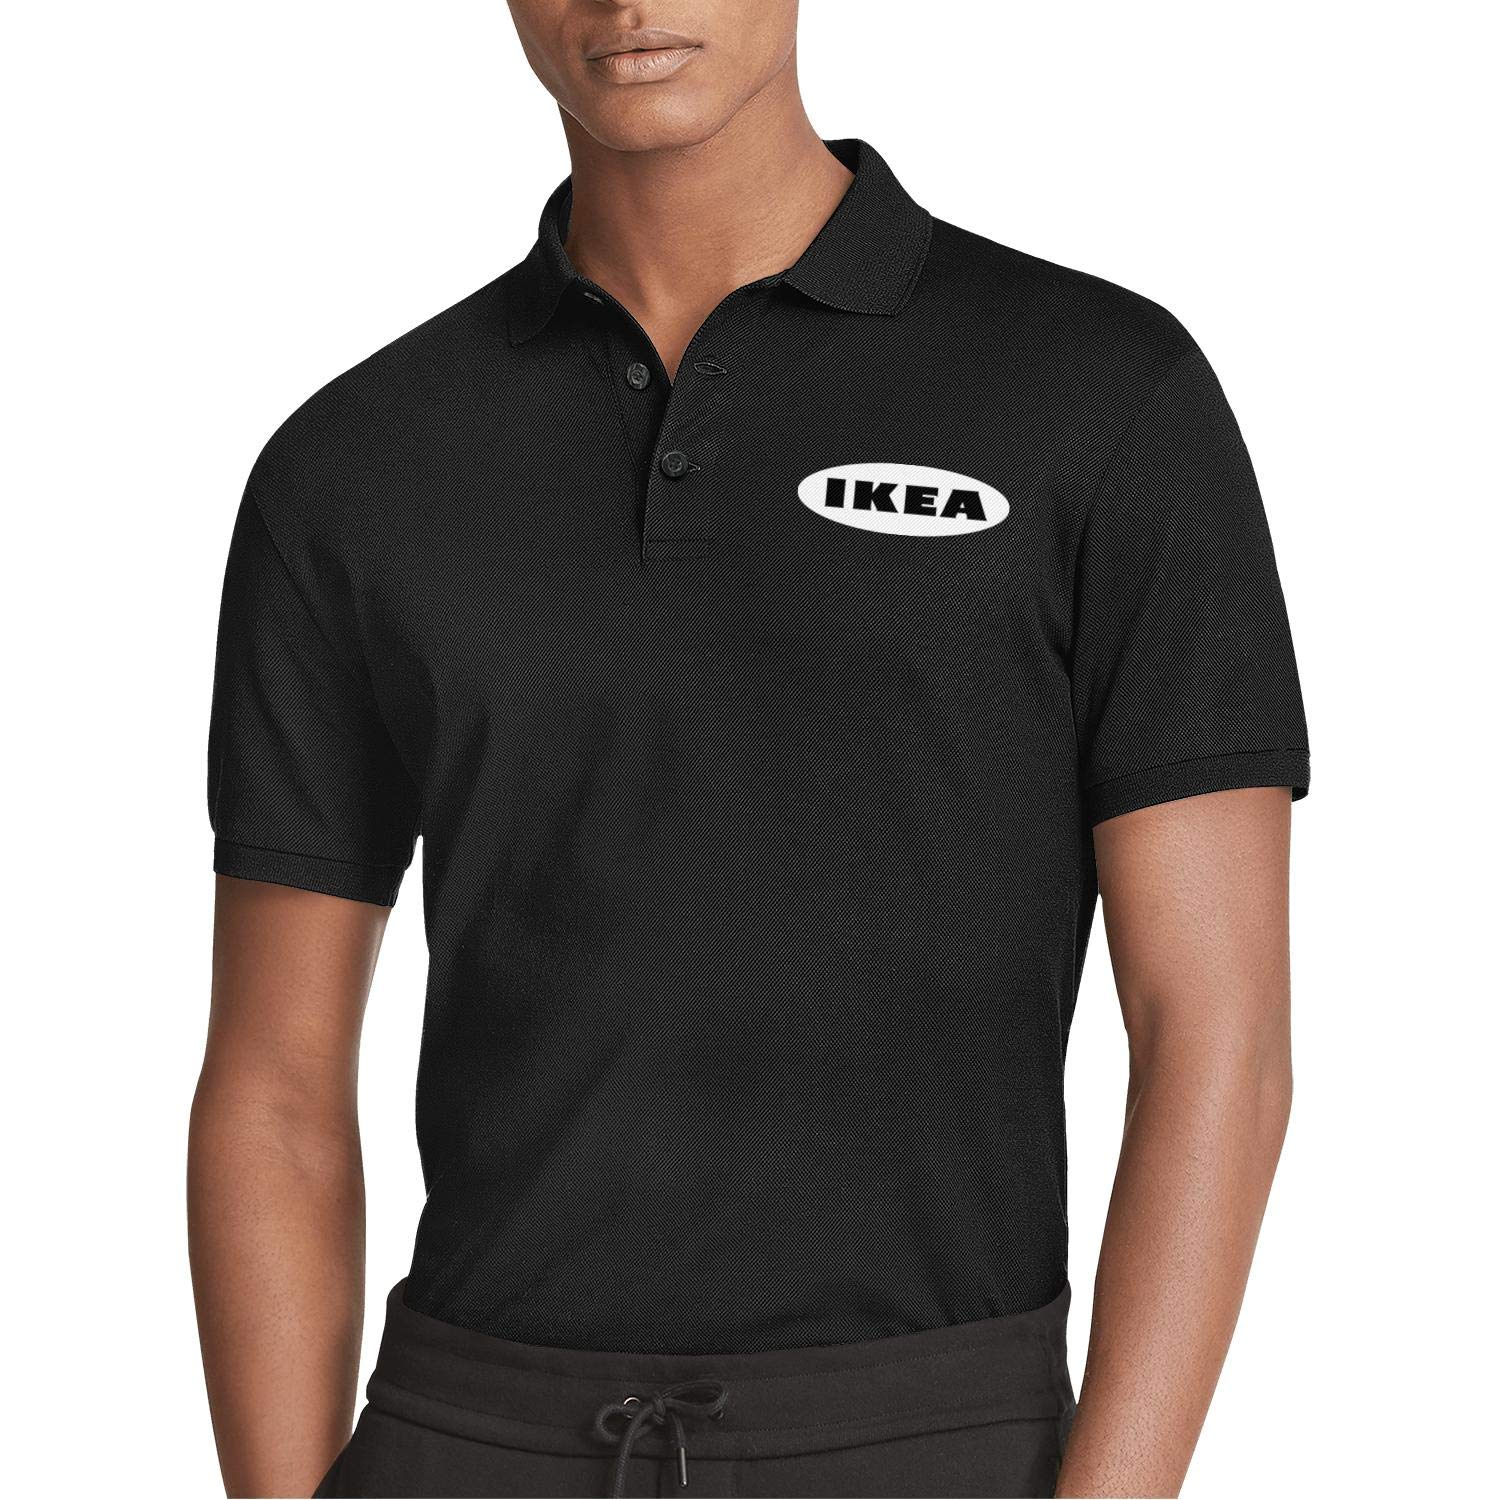 UONDLWHER Mens Short Sleeve Cool Polo T Shirts